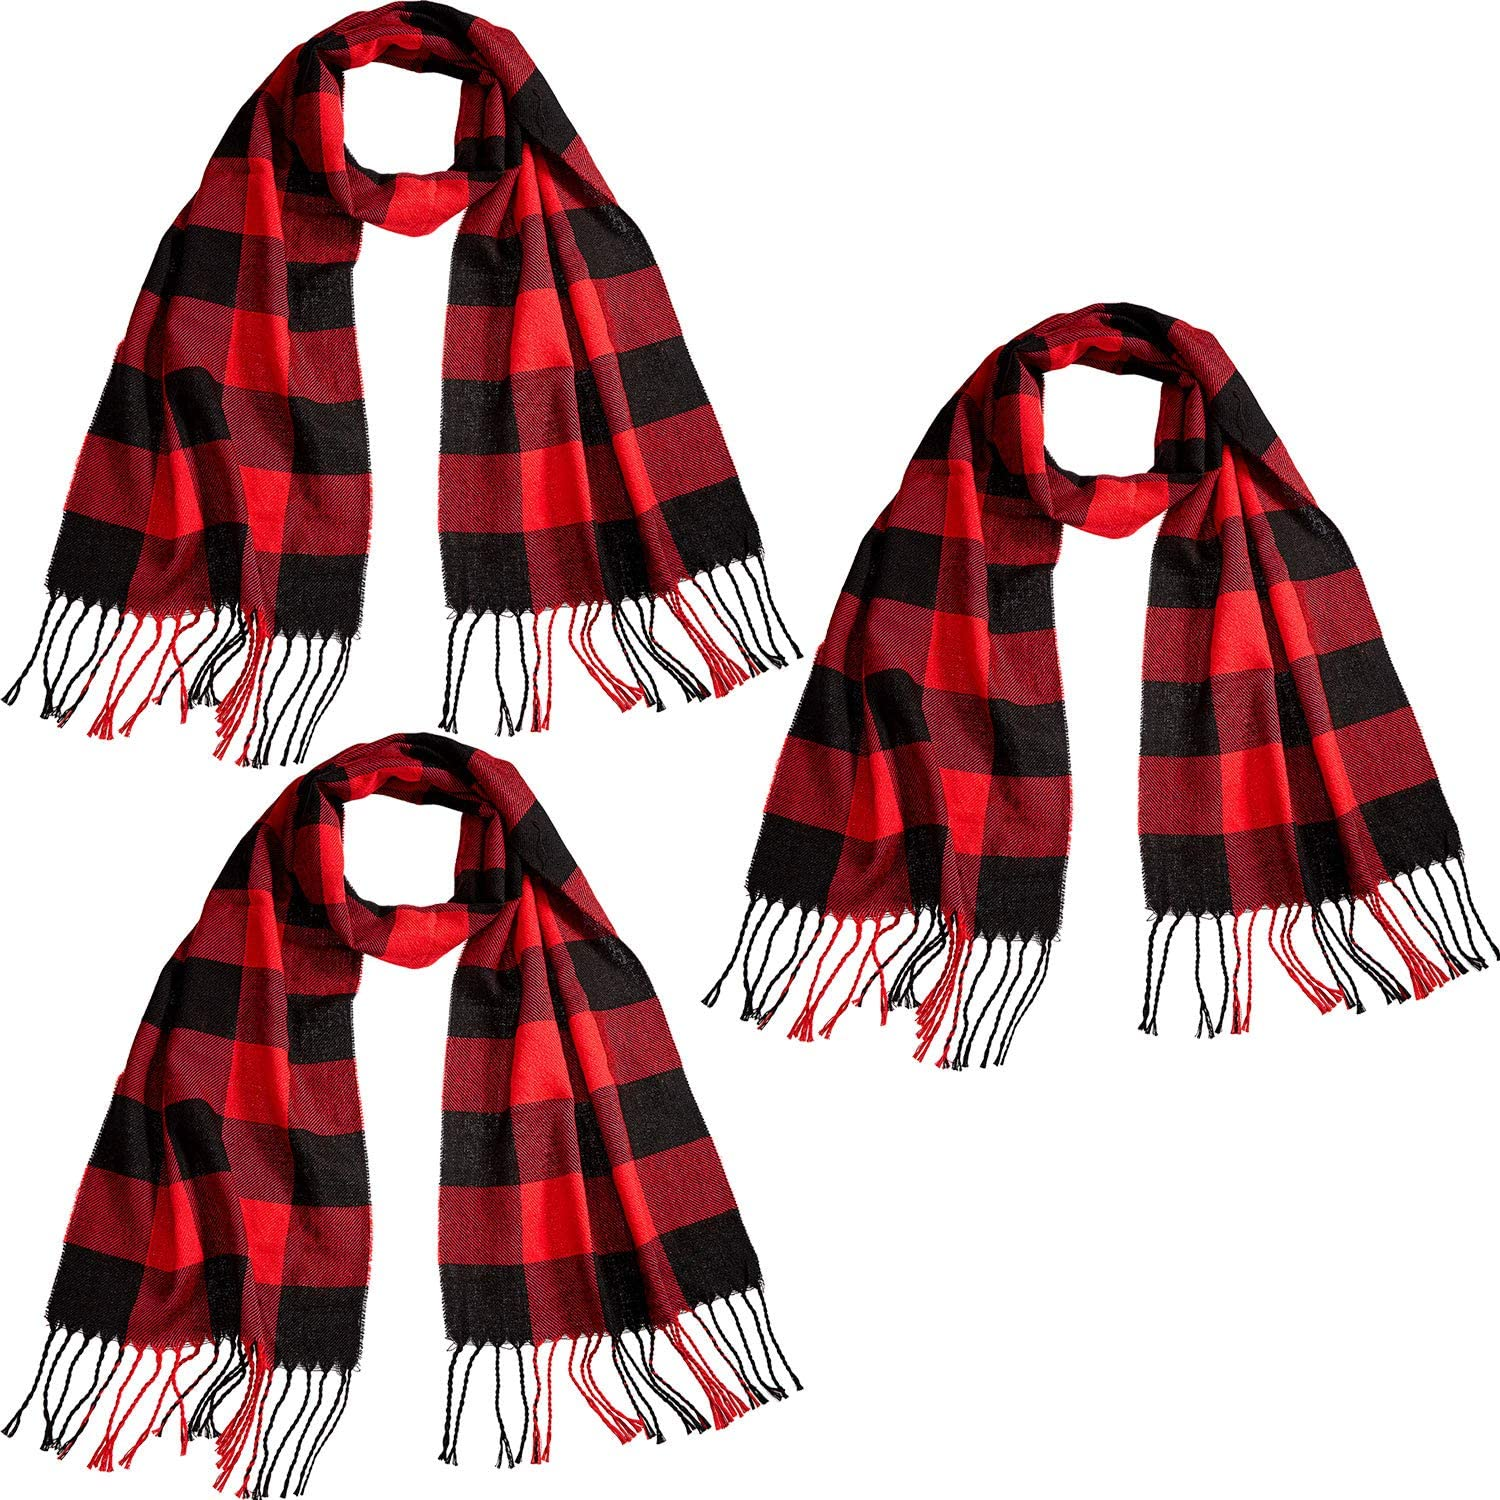 3 Pieces Faux Cashmere Feel Winter Plaid Scarf Warm Shawls Scarves for Men and Women